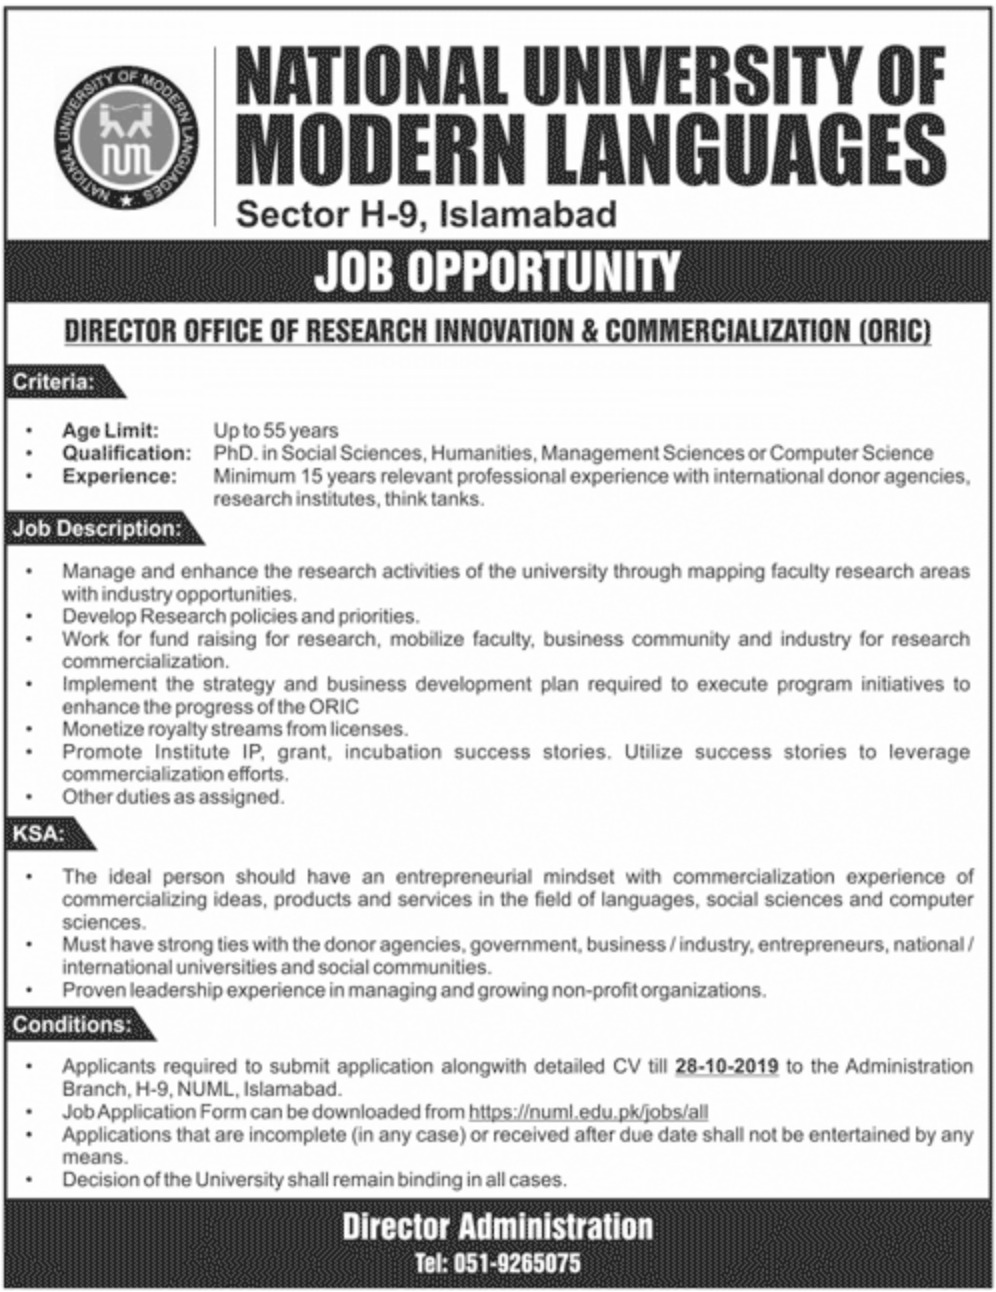 National University of Modern Languages Jobs 2019 NUML Islamabad